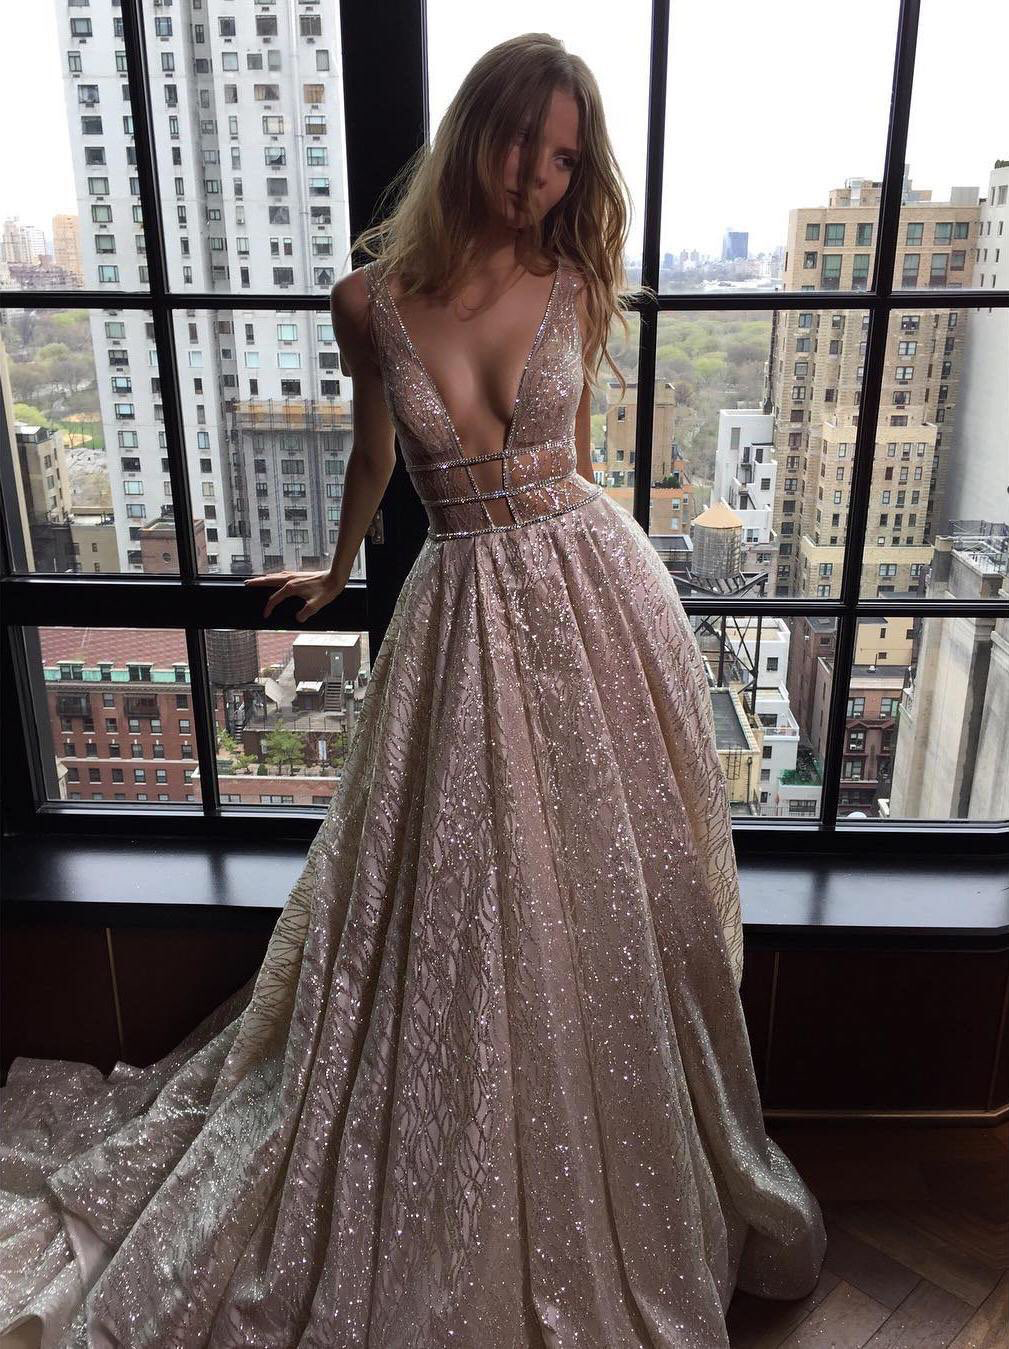 Pin by emily ward on my style pinterest prom special dresses